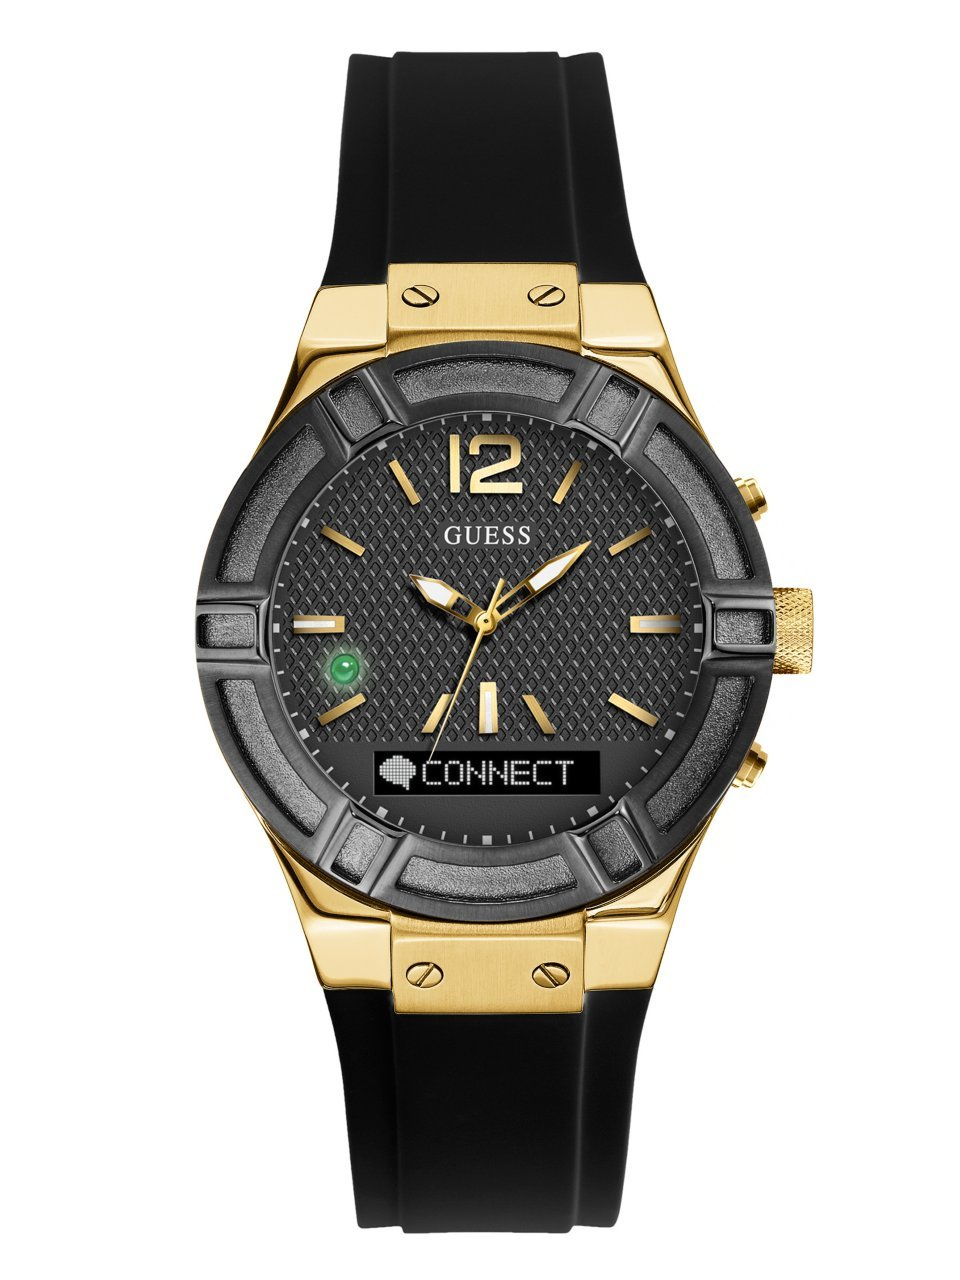 GUESS Women's CONNECT Smartwatch with Amazon Alexa and Silicone Strap Buckle - iOS and Android Compatible -  Black